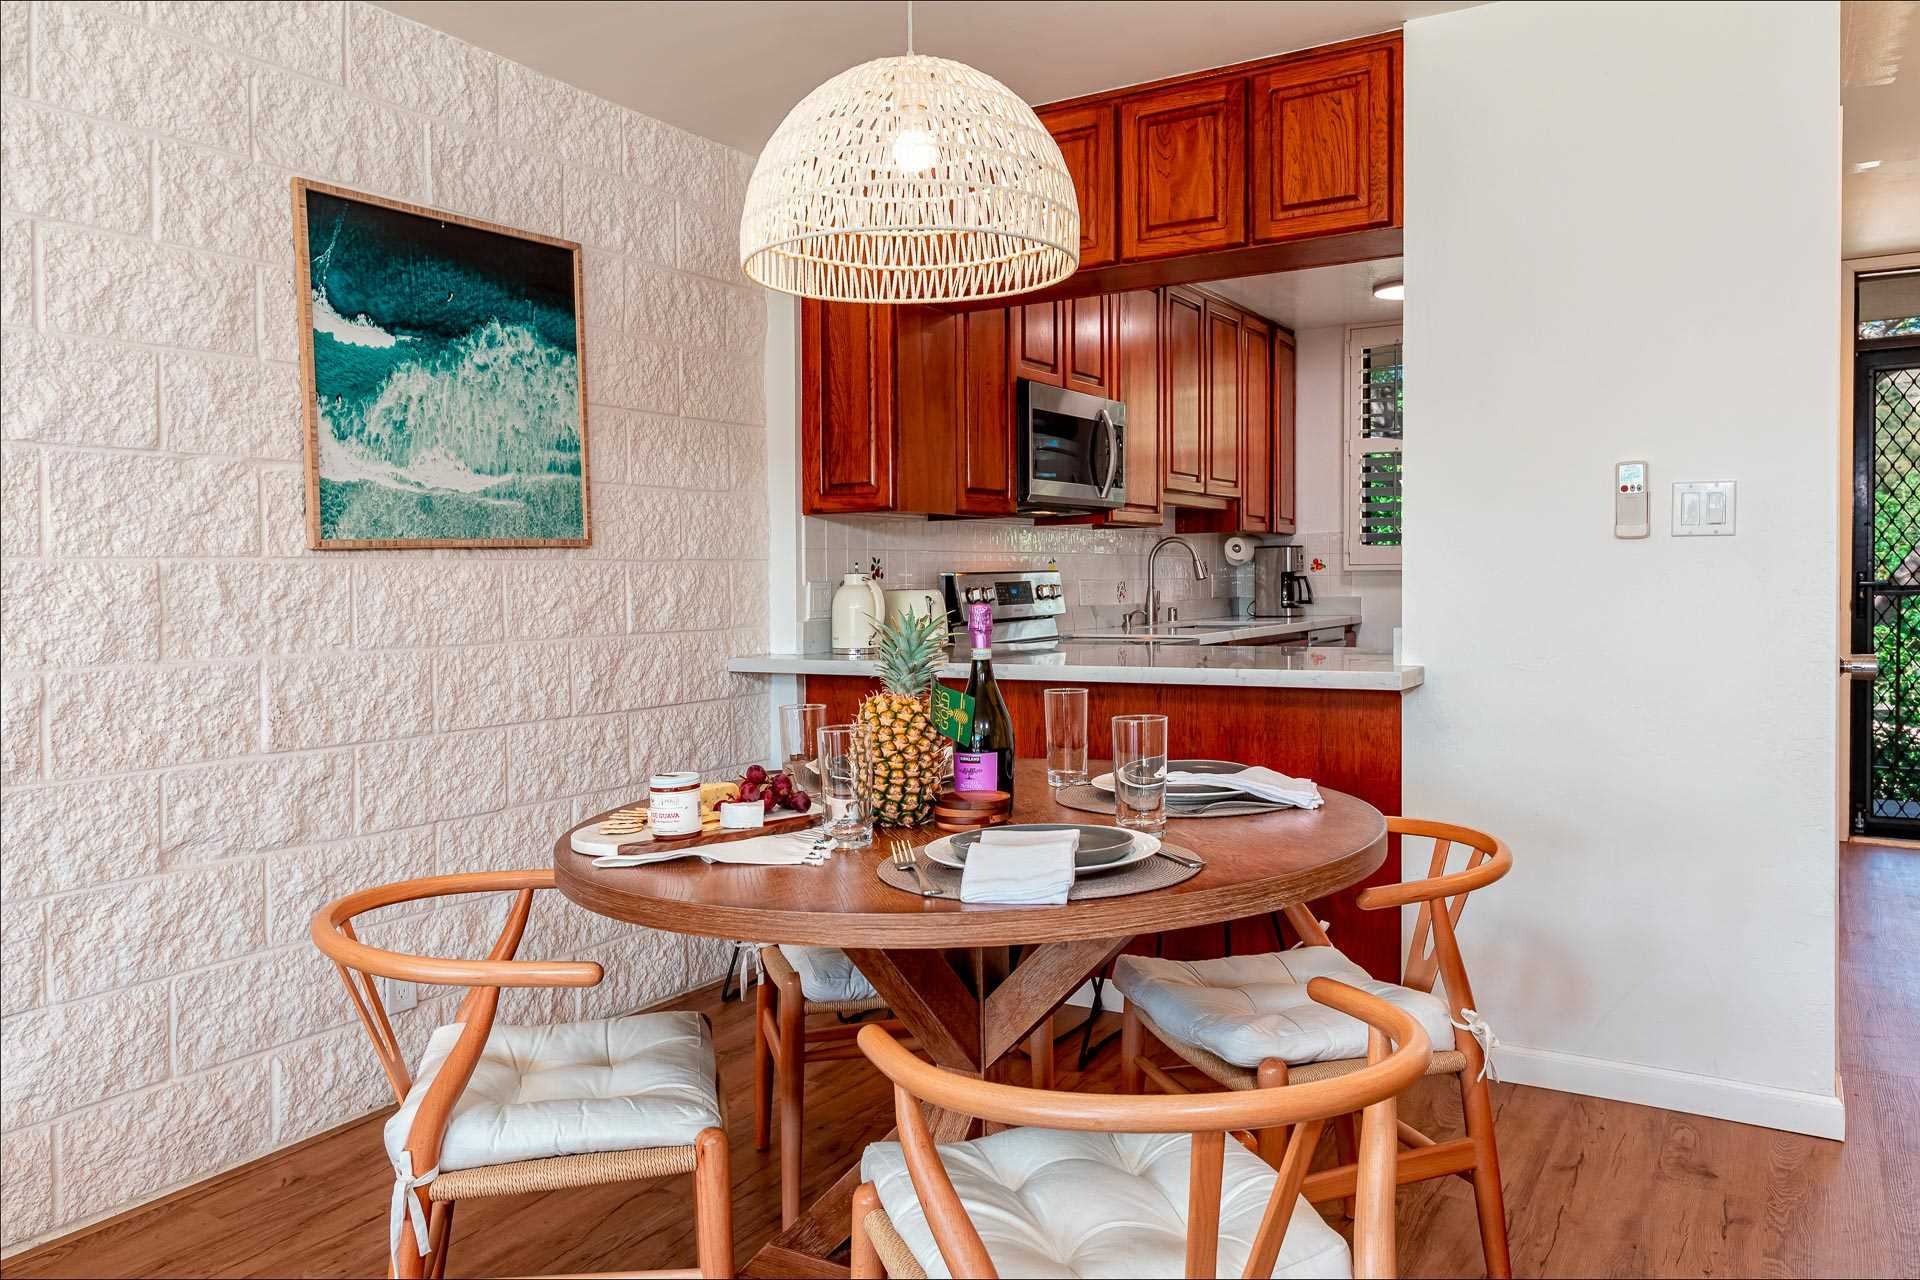 Dining area with kitchen counter pass thru